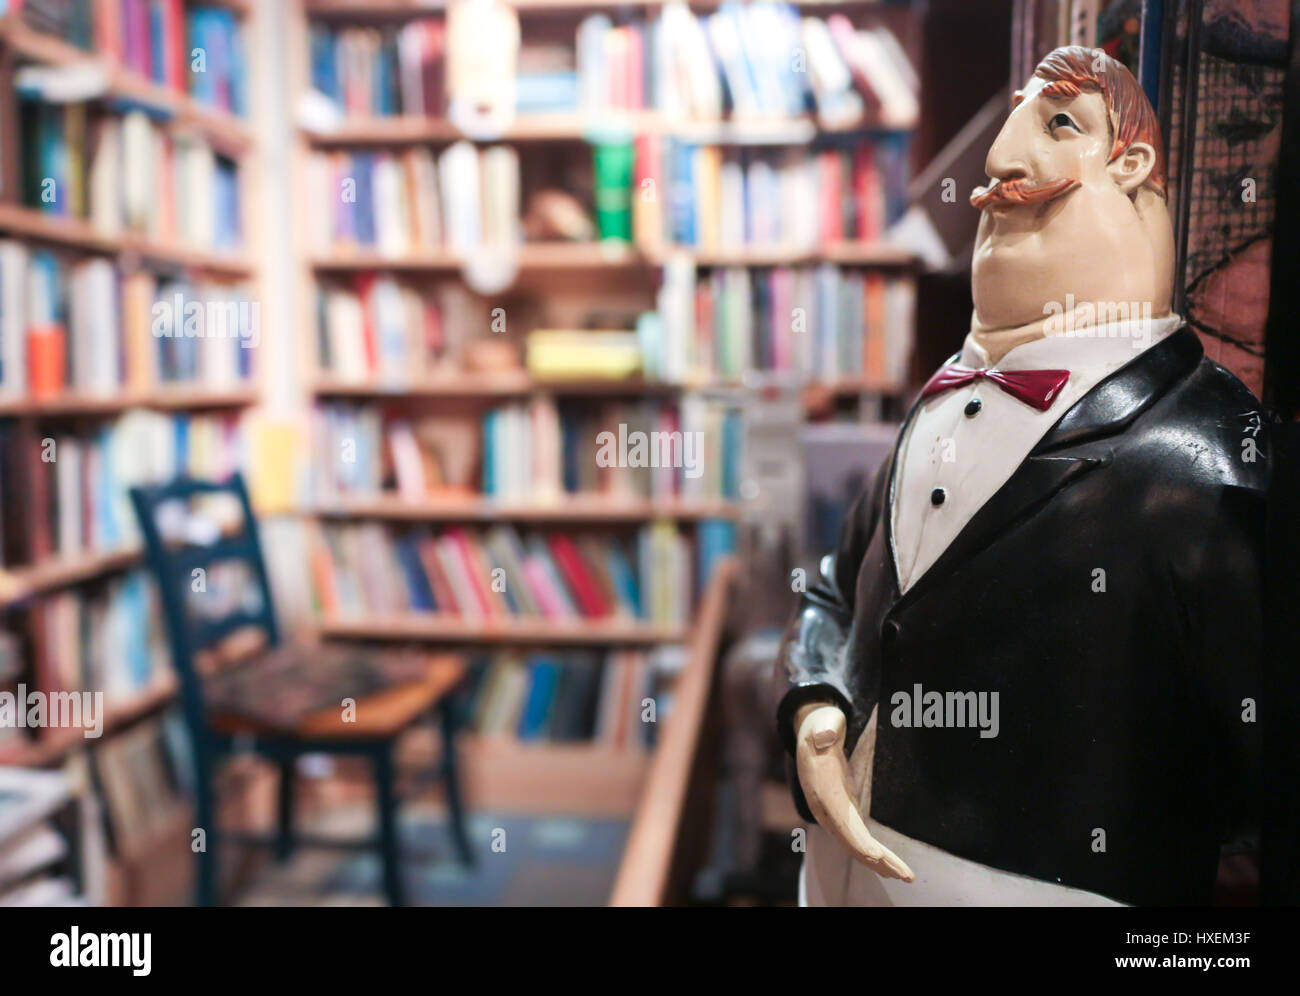 Butler puppet inviting to enter inside an old book store. - Stock Image